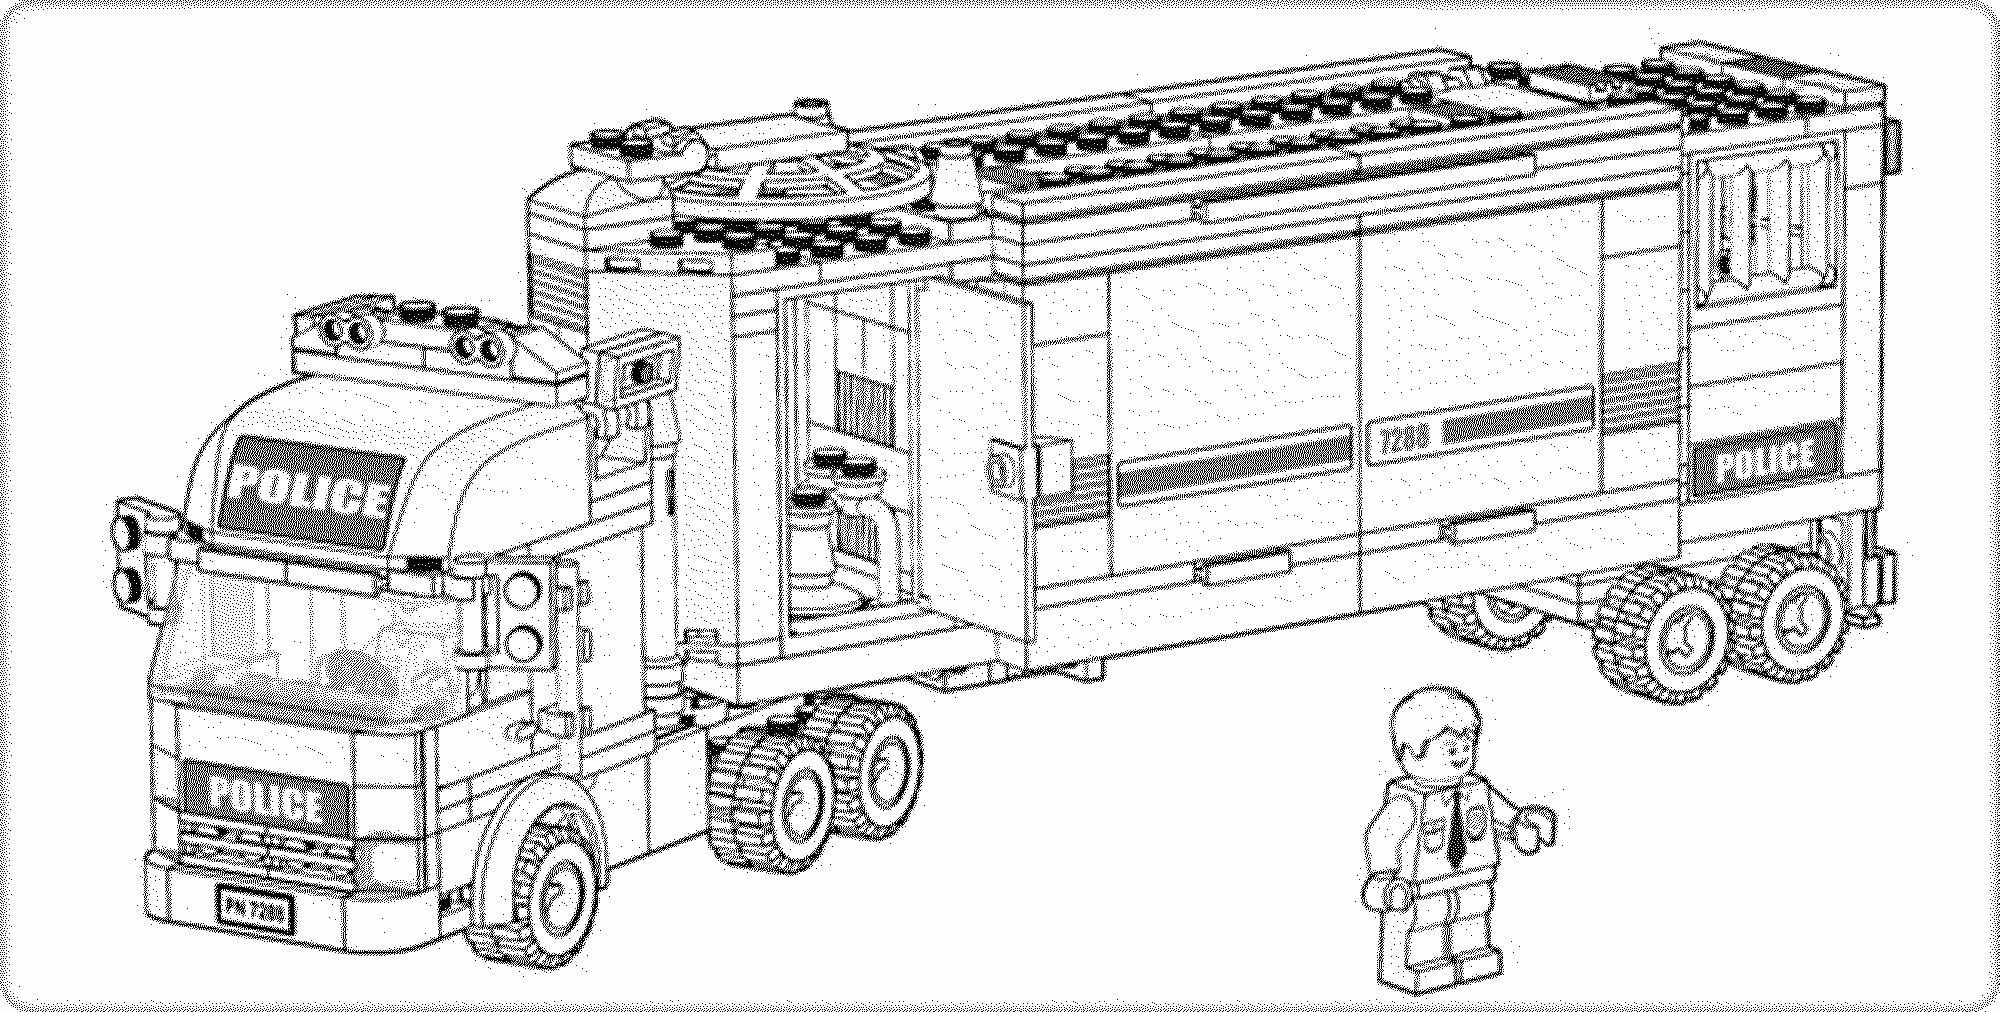 Transport Truck Coloring Pages Awesome Semi Truck Coloring Pages Lovely Fire Tru Ausmalen Kostenlose Malvorlagen Malvorlagen